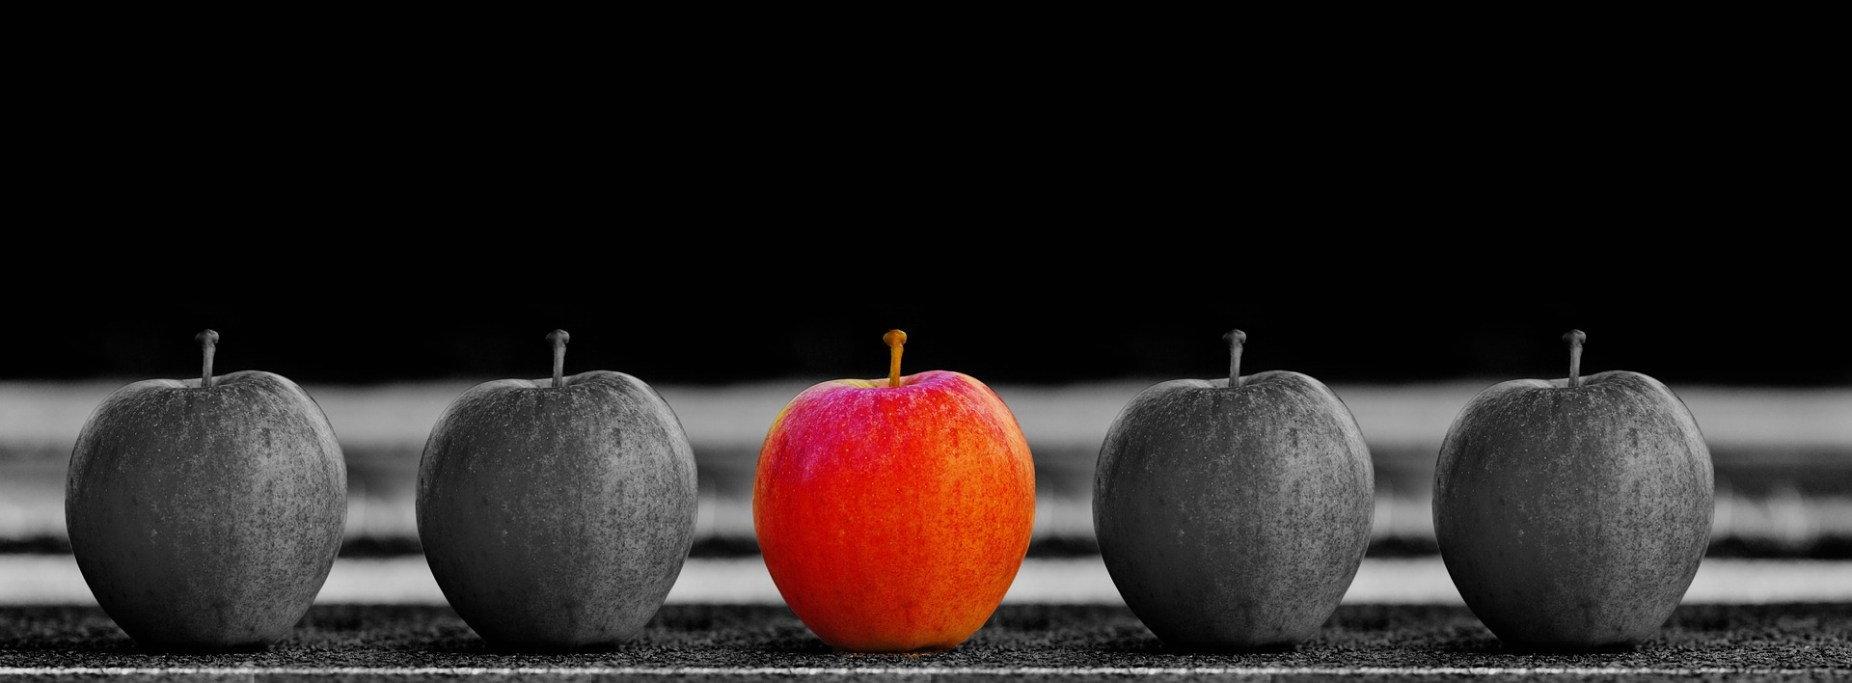 Image: Black and white apples with a red apple in the center